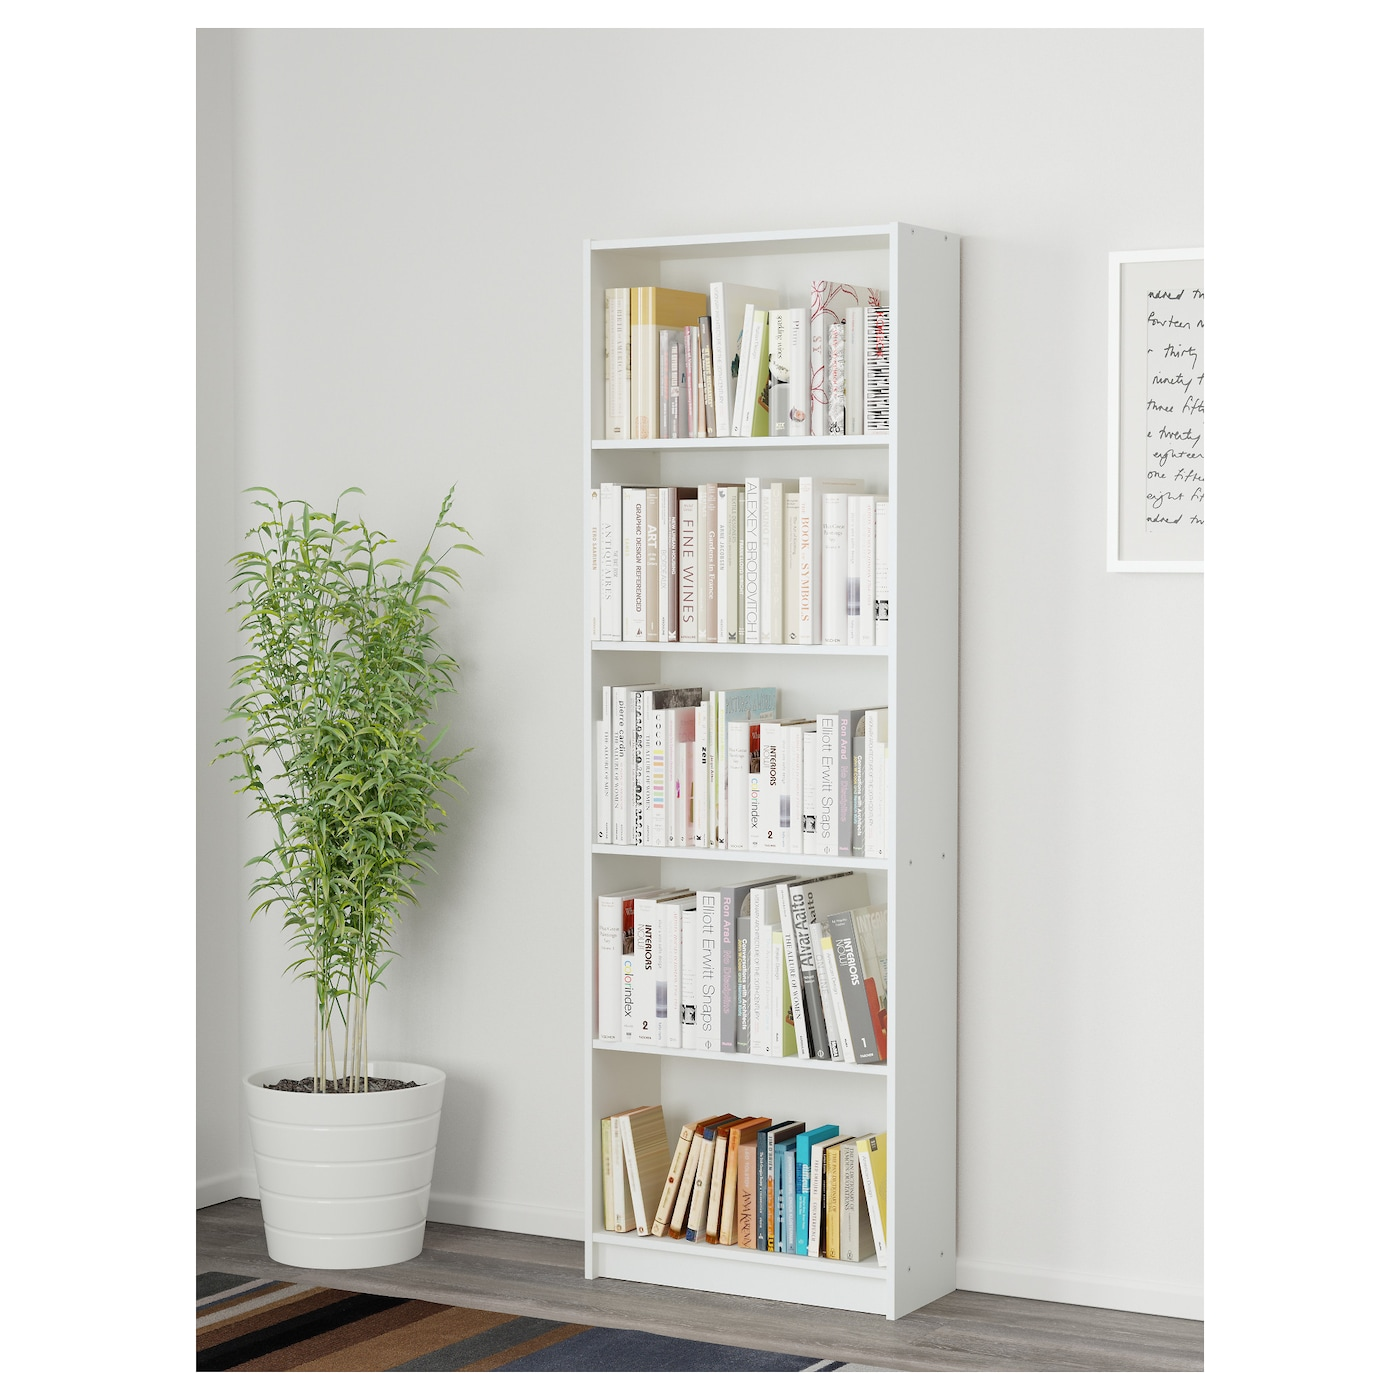 IKEA GERSBY bookcase